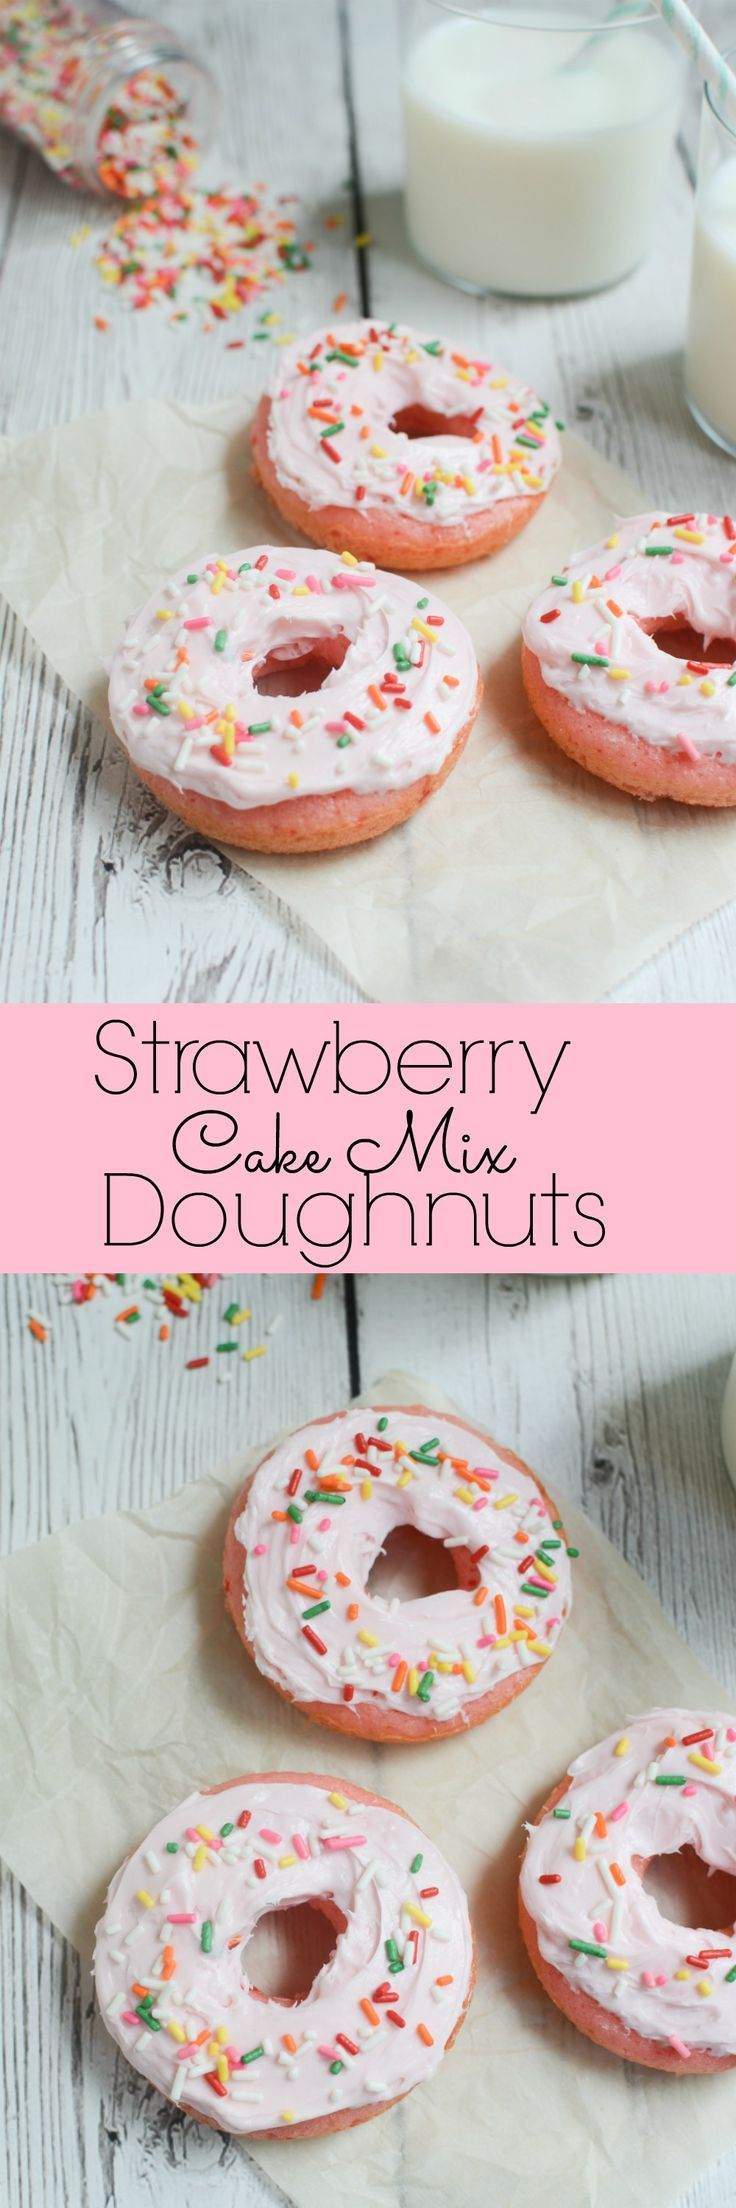 Strawberry Cake Mix Doughnuts - homemade doughnuts in minutes! You won't be able to resist these fluffy doughnuts!